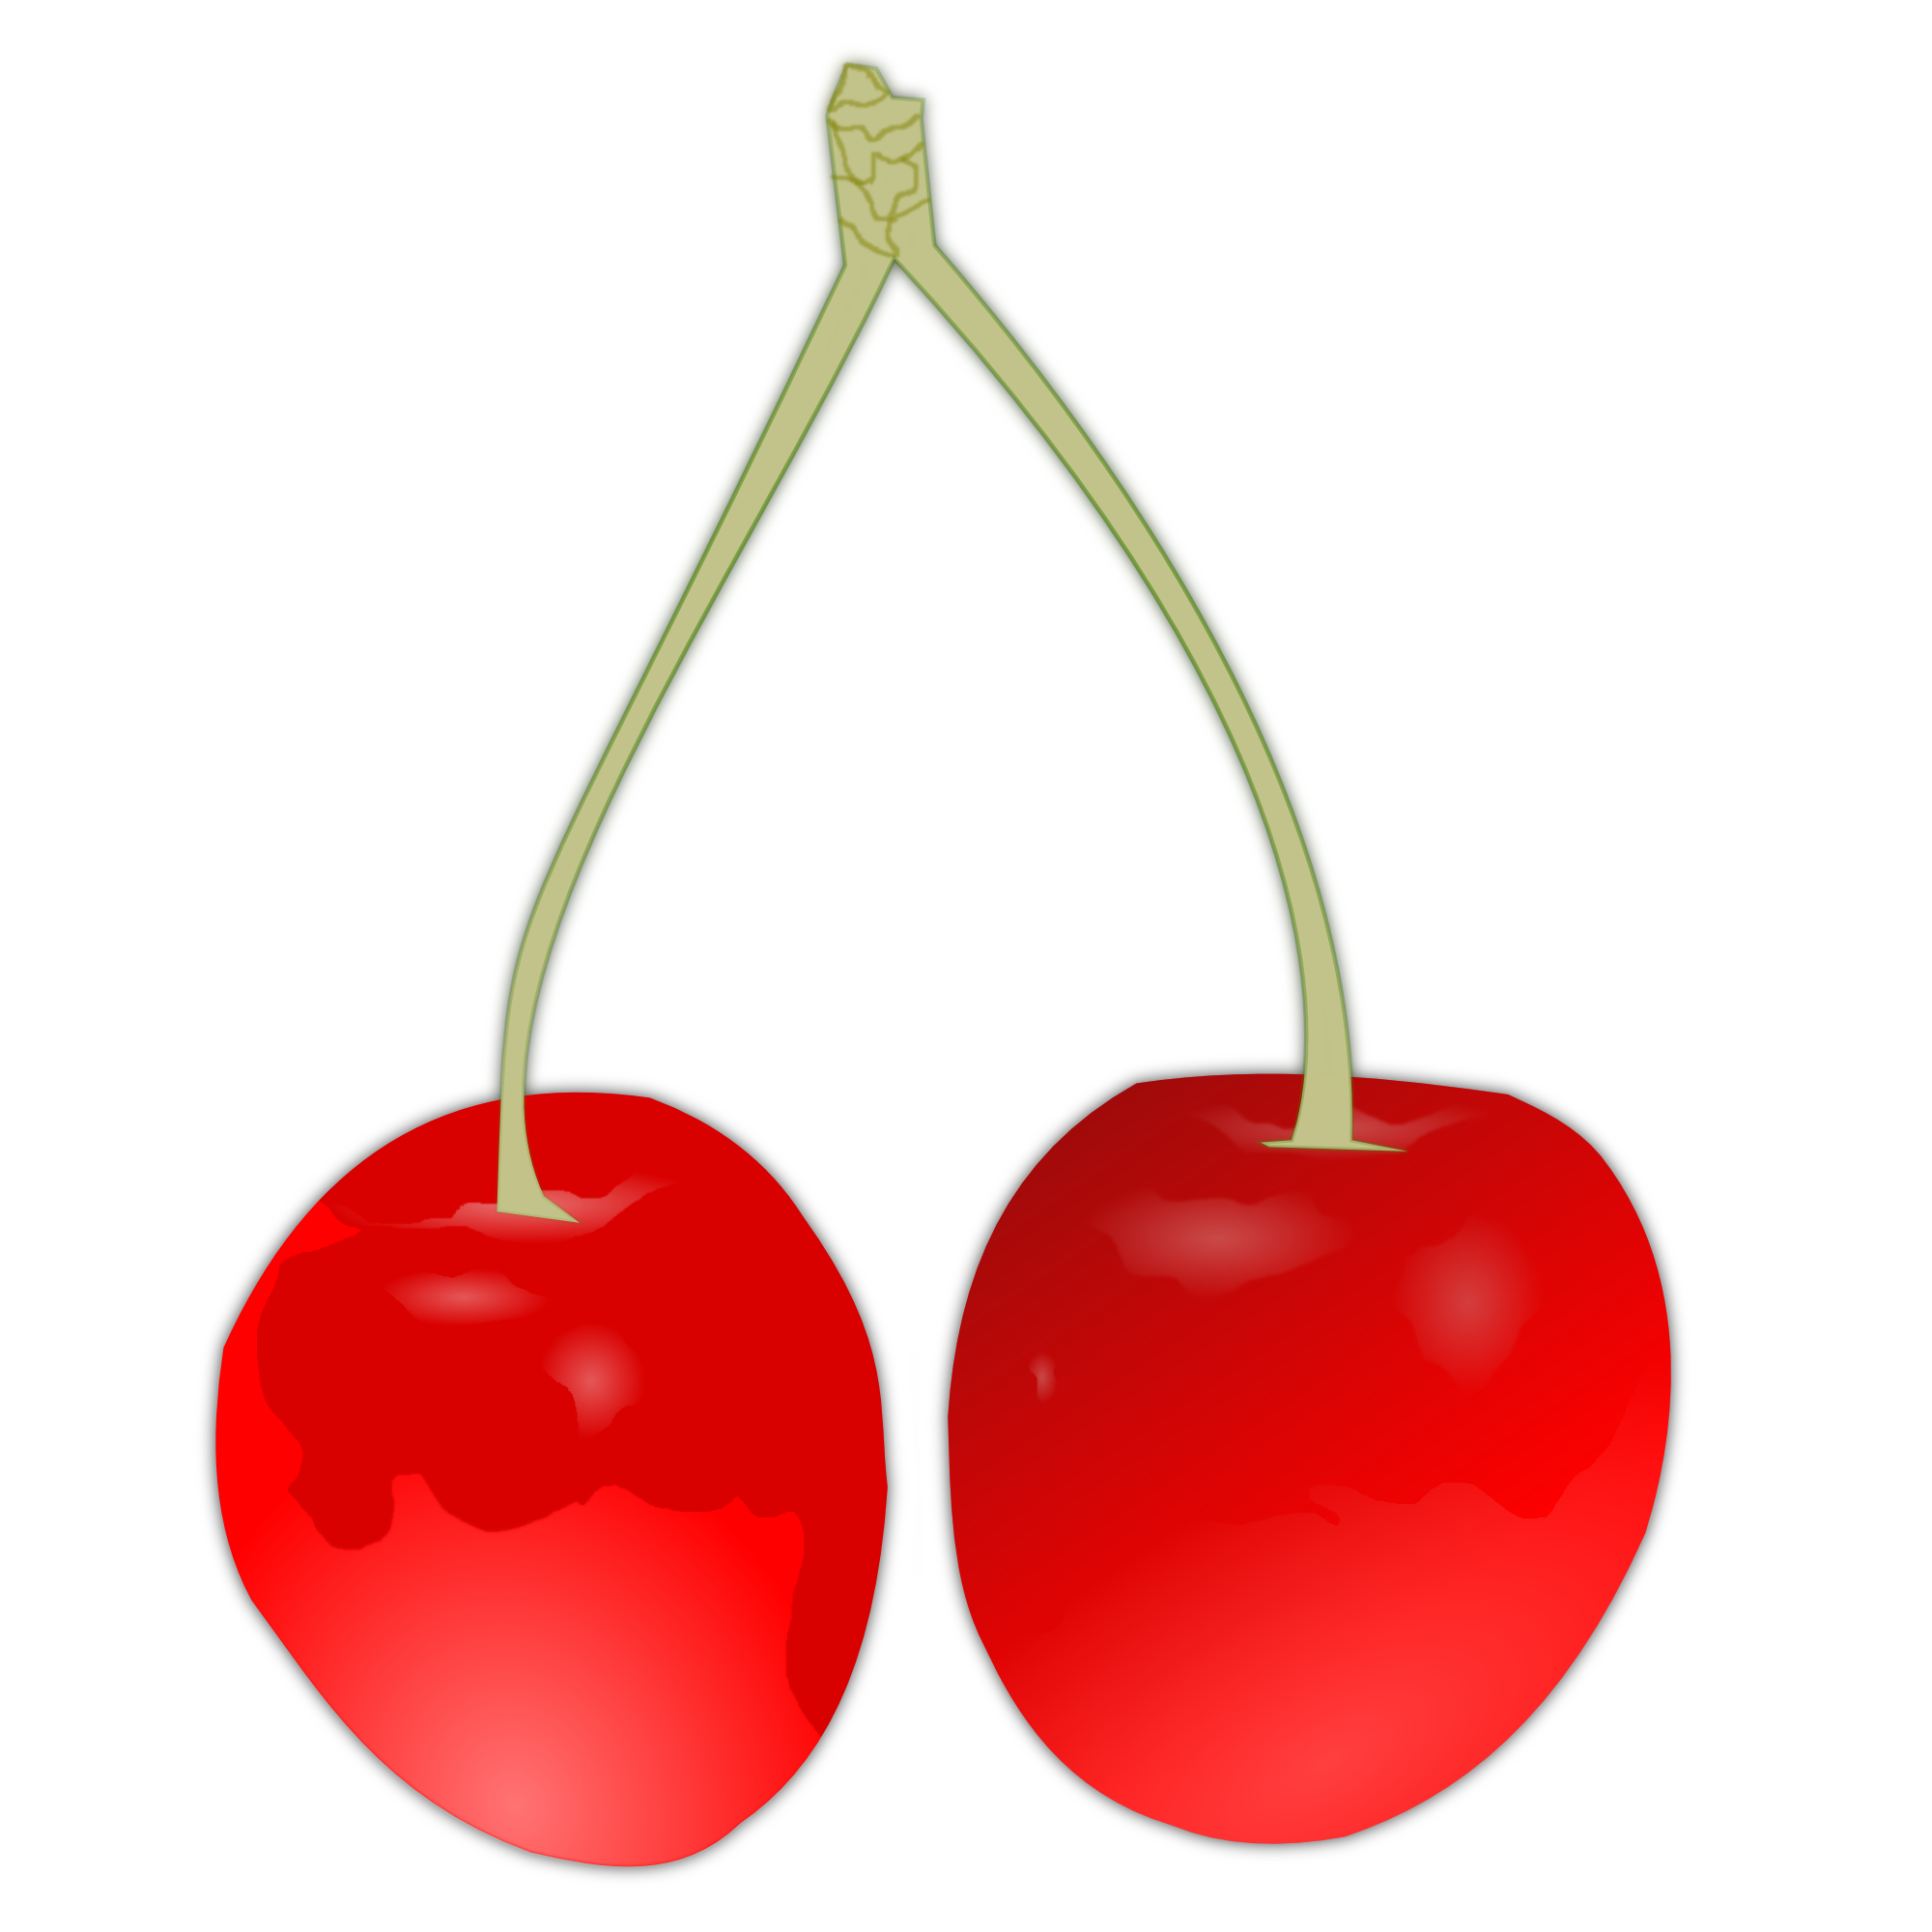 Single Cherry Clipart Free Clip Art Images